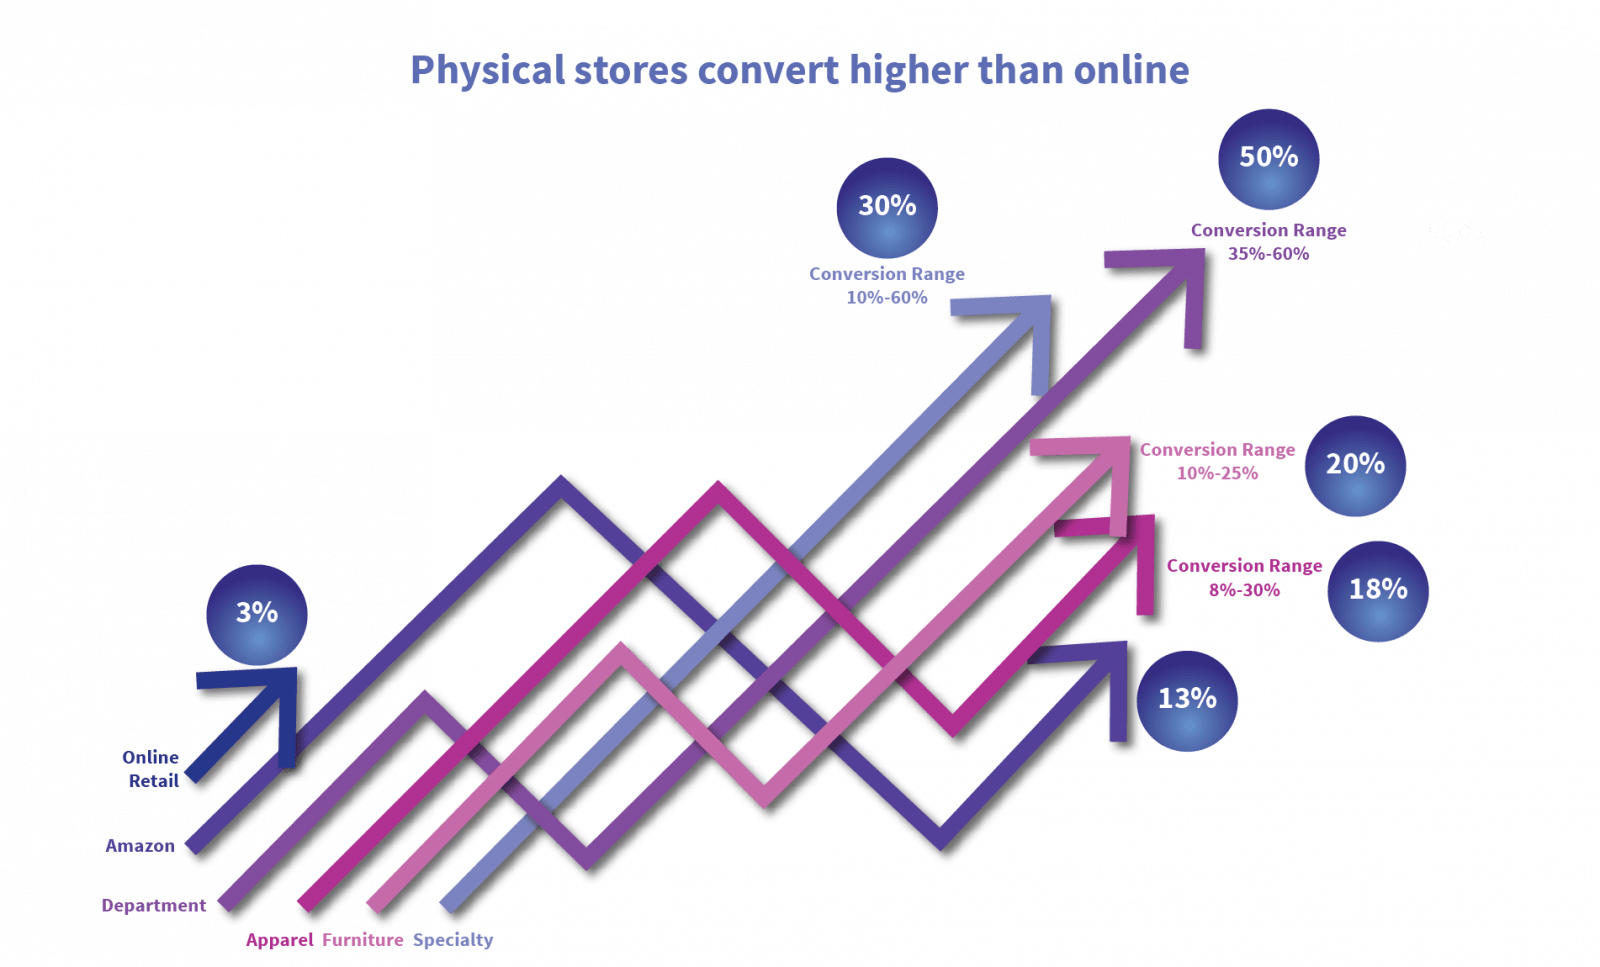 etp physical-stores-convert-01